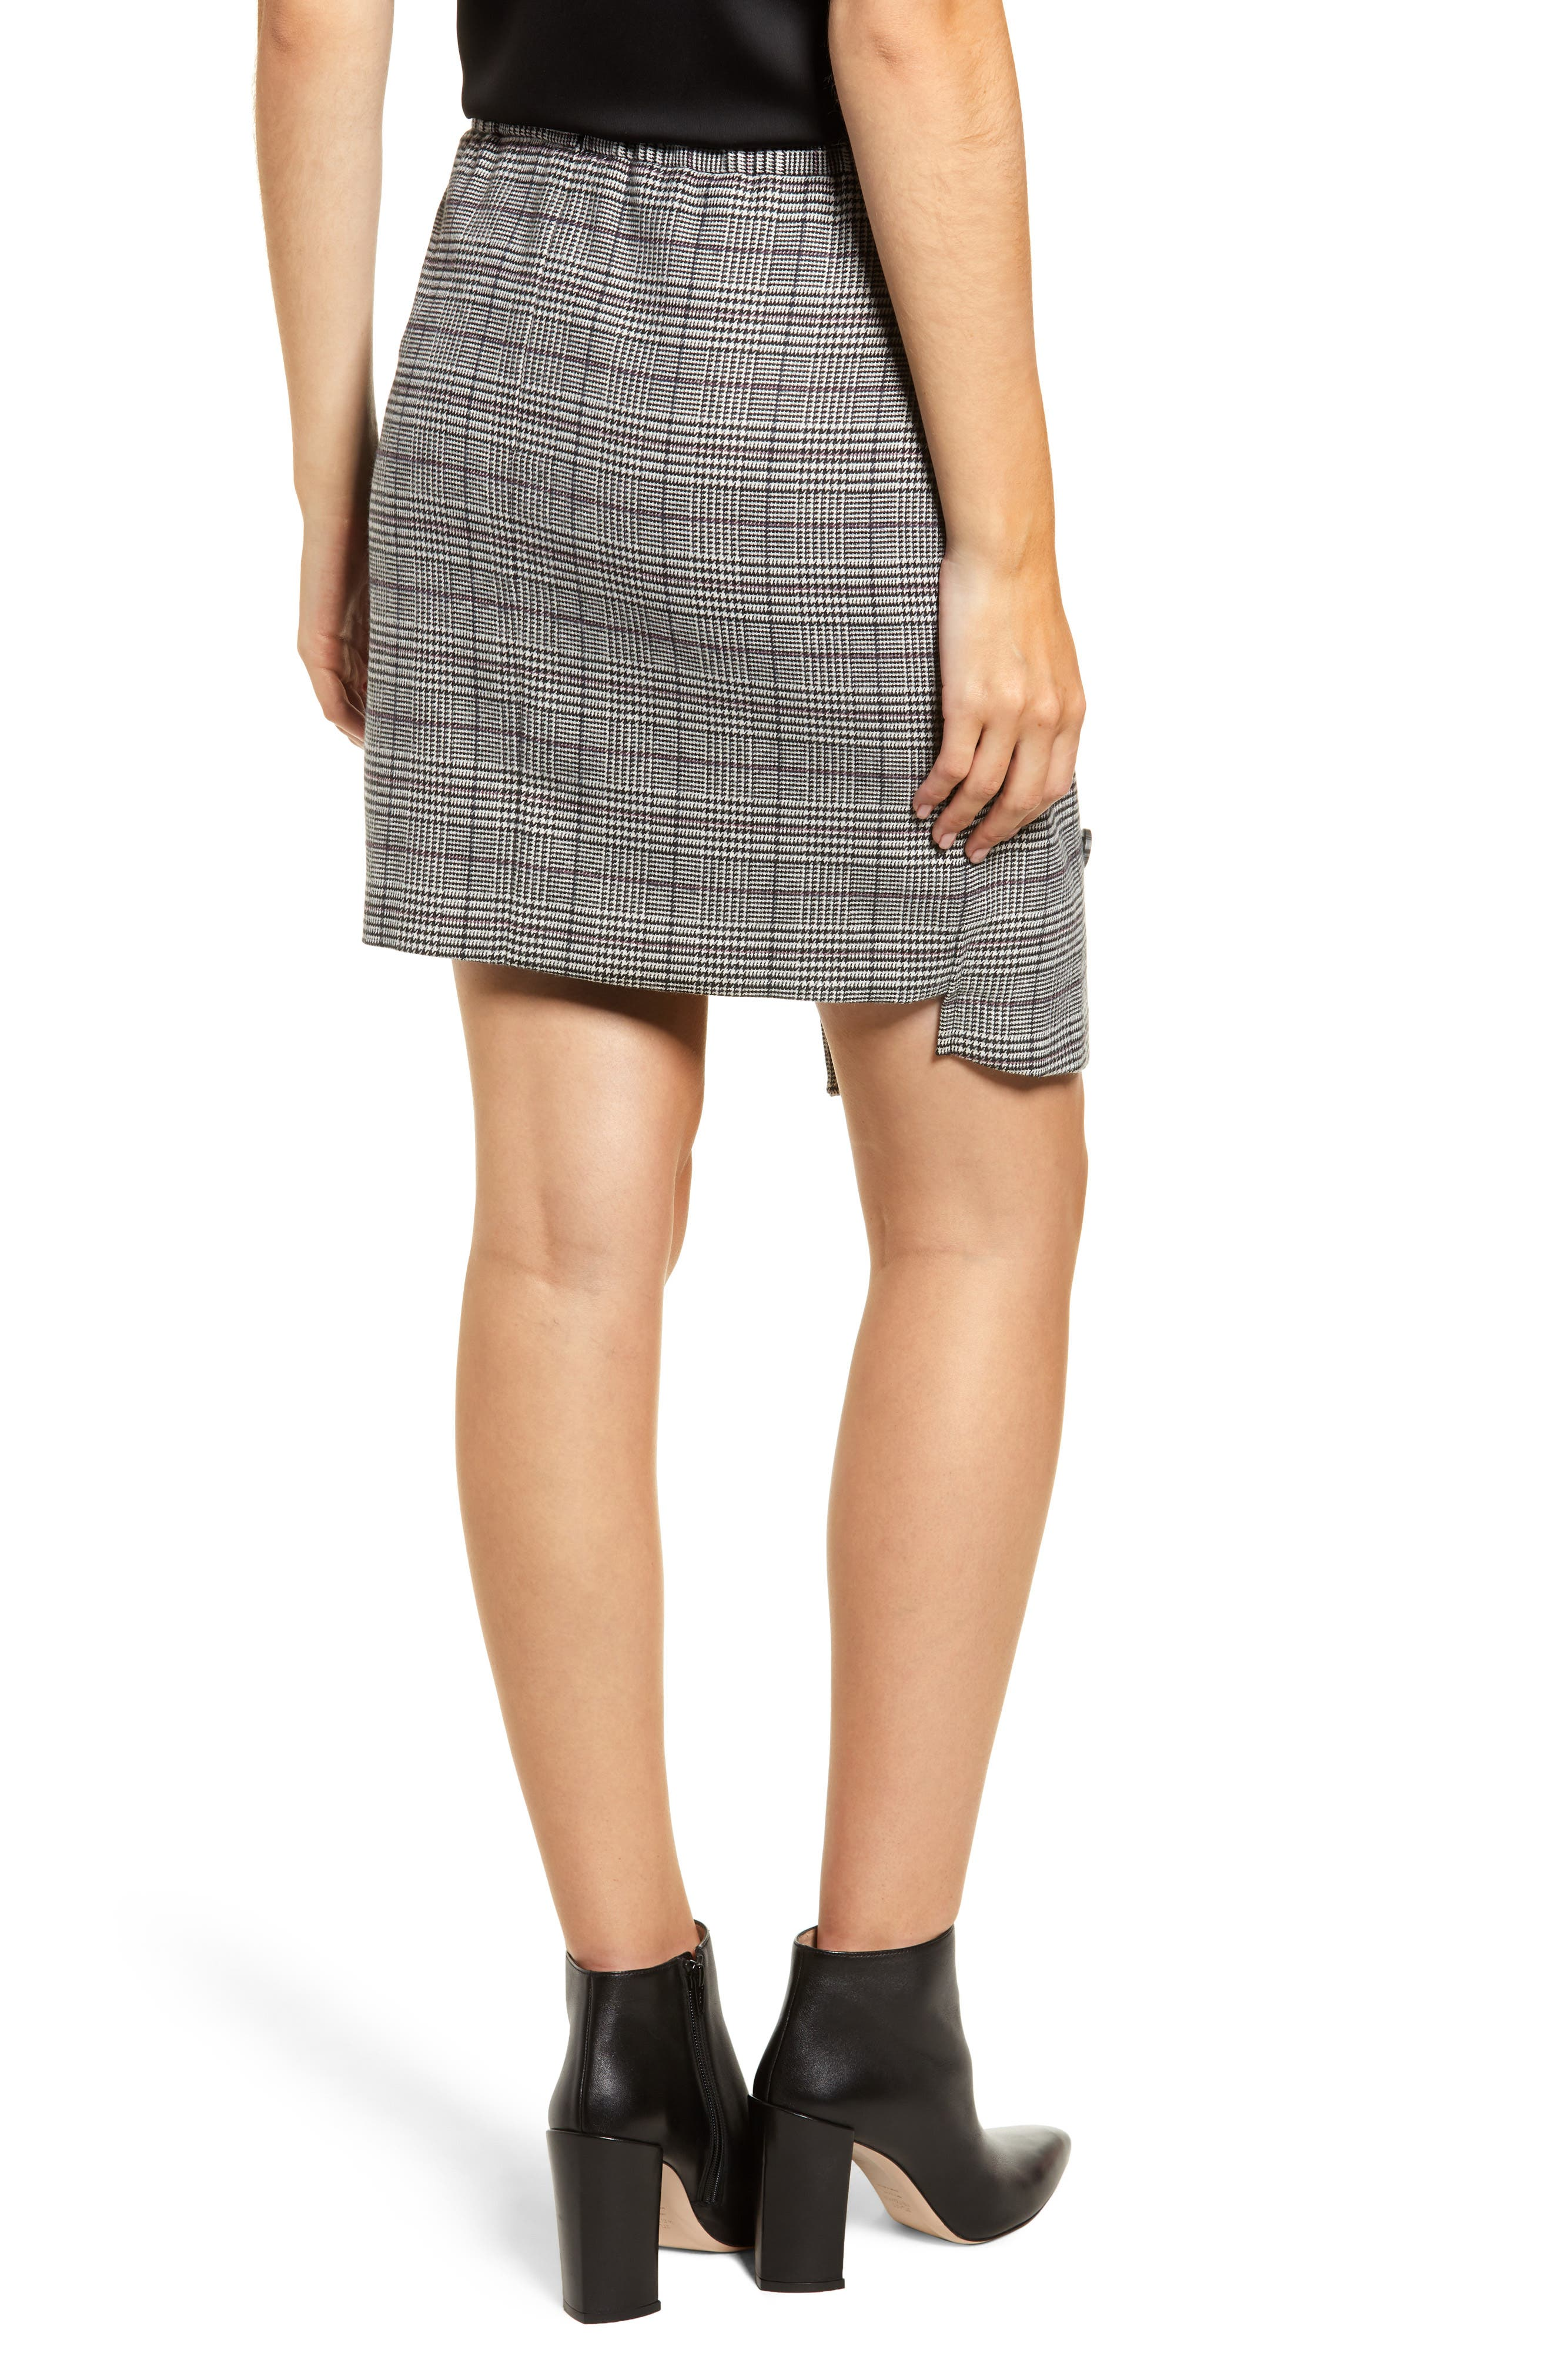 Chriselle Lim Bianca Houndstooth Button Front Skirt,                             Alternate thumbnail 3, color,                             GREY PLAID